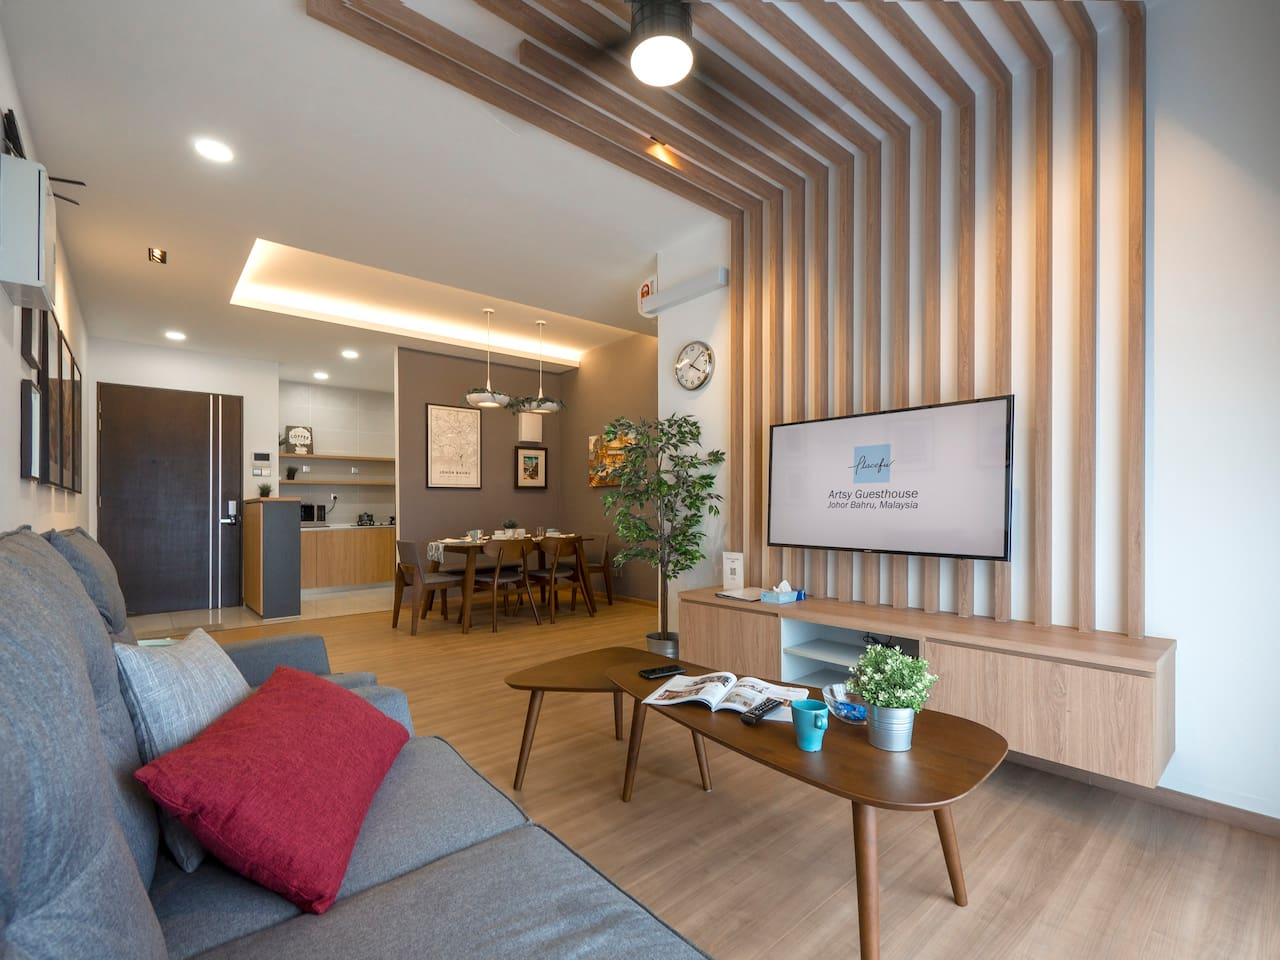 A cosy living area with a private art gallery. You can enjoy your Netflix show in the comfort of the 3+1 seater sofa or simply enjoy the view at the balcony.